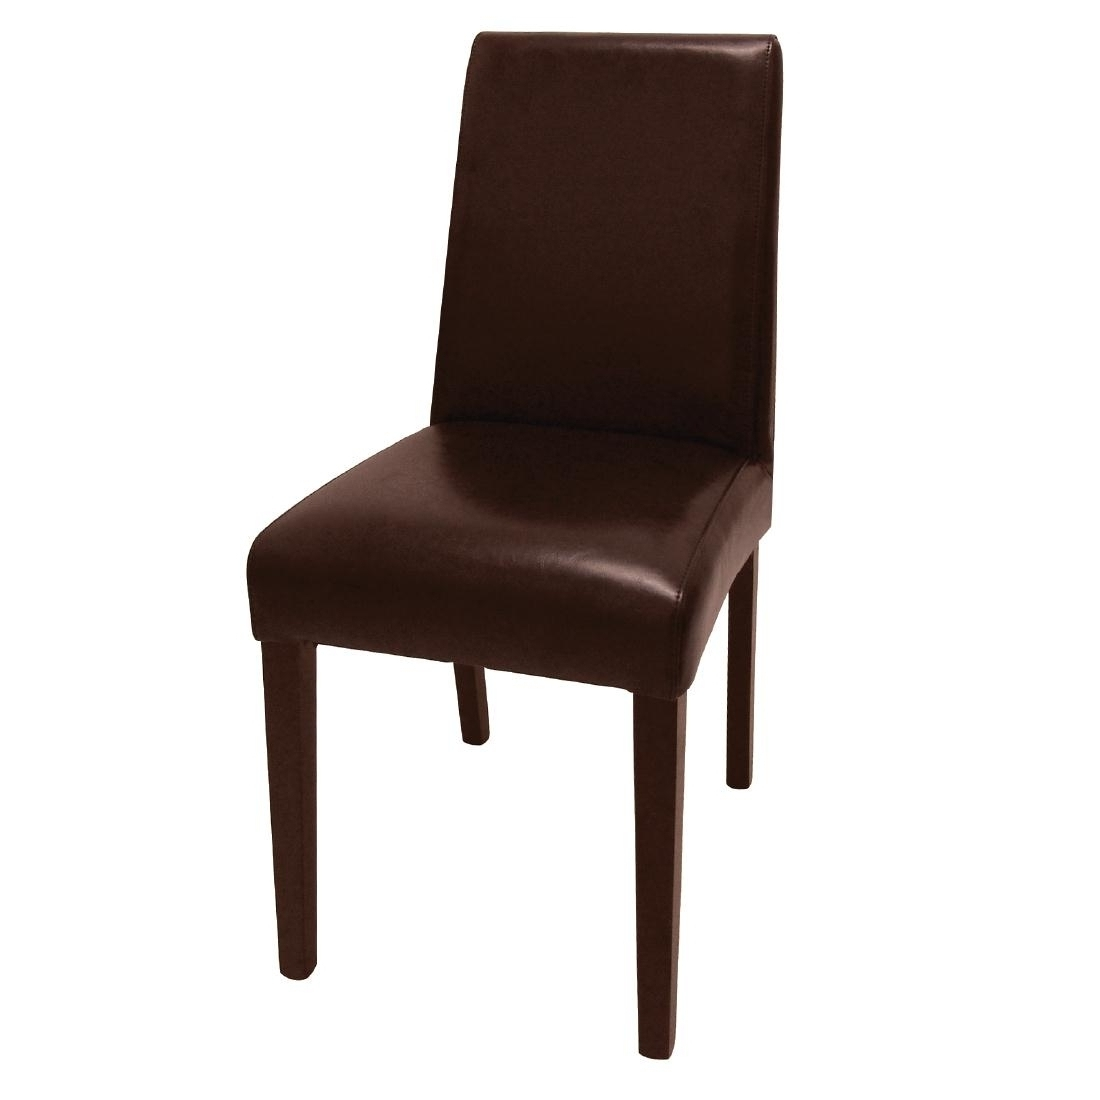 Dark Brown Leather Dining Chairs Throughout 2017 Bolero Faux Leather Dining Chairs Dark Brown Pk 2 Pk 2, The Pubshop (View 16 of 25)